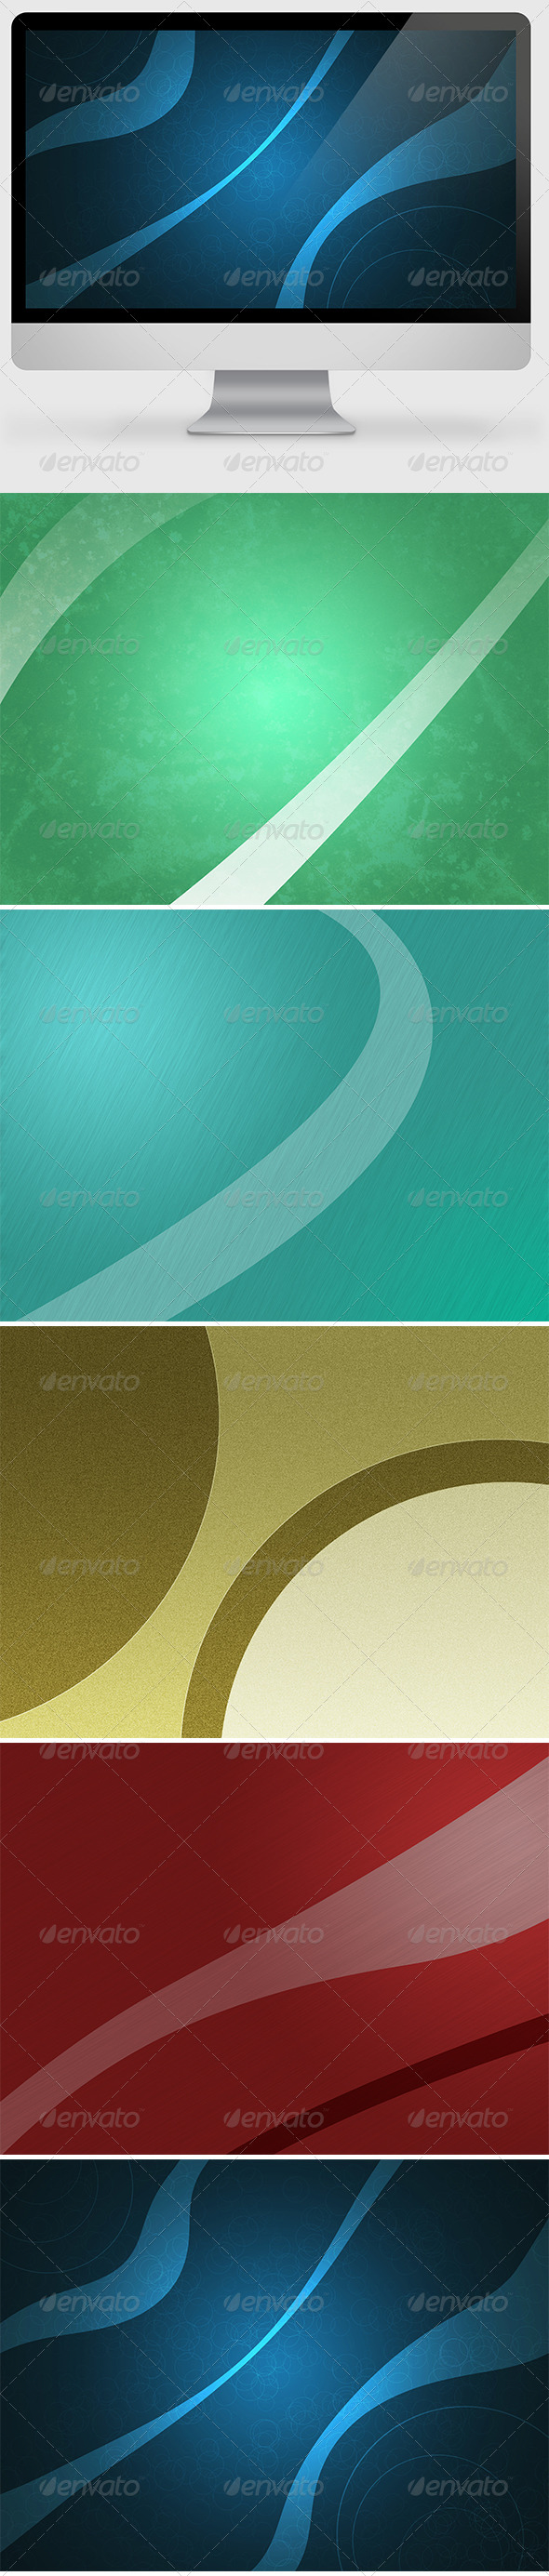 GraphicRiver 5x Abstract Backgrounds 6925967